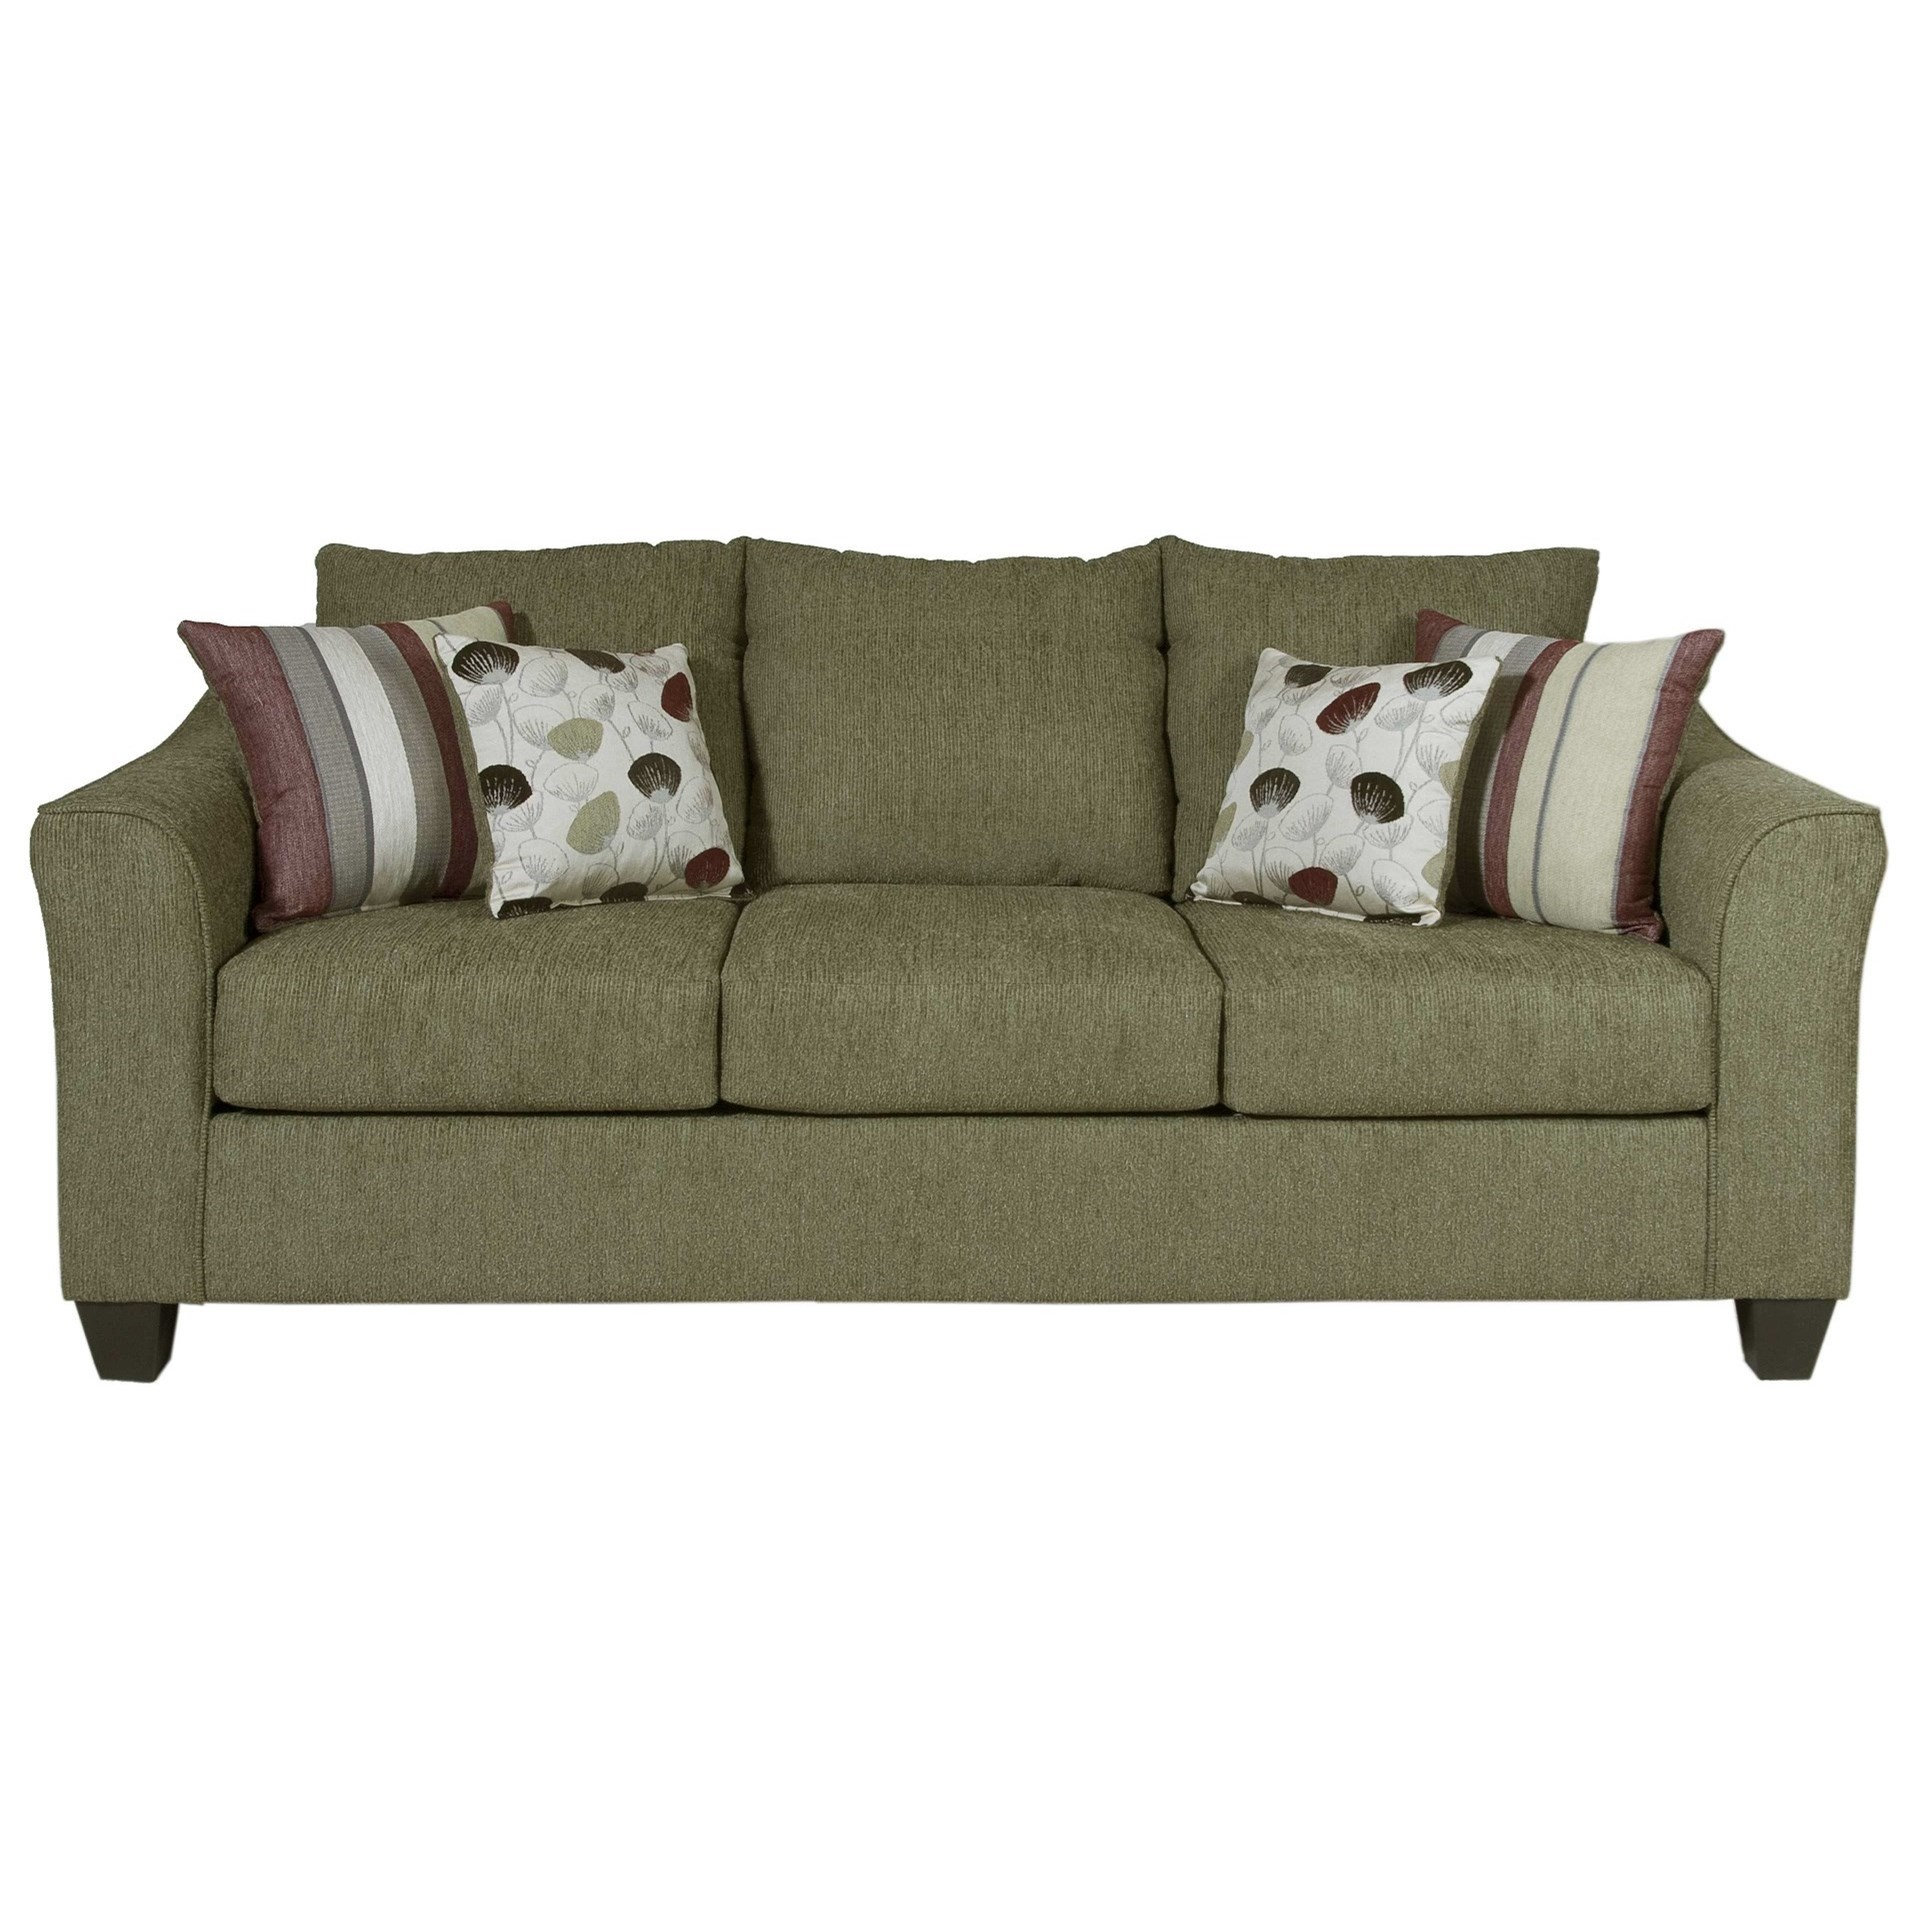 Serta Upholstery By Hughes Furniture 1225 Casual Upholstered Sofa   Item  Number: 1225S 1